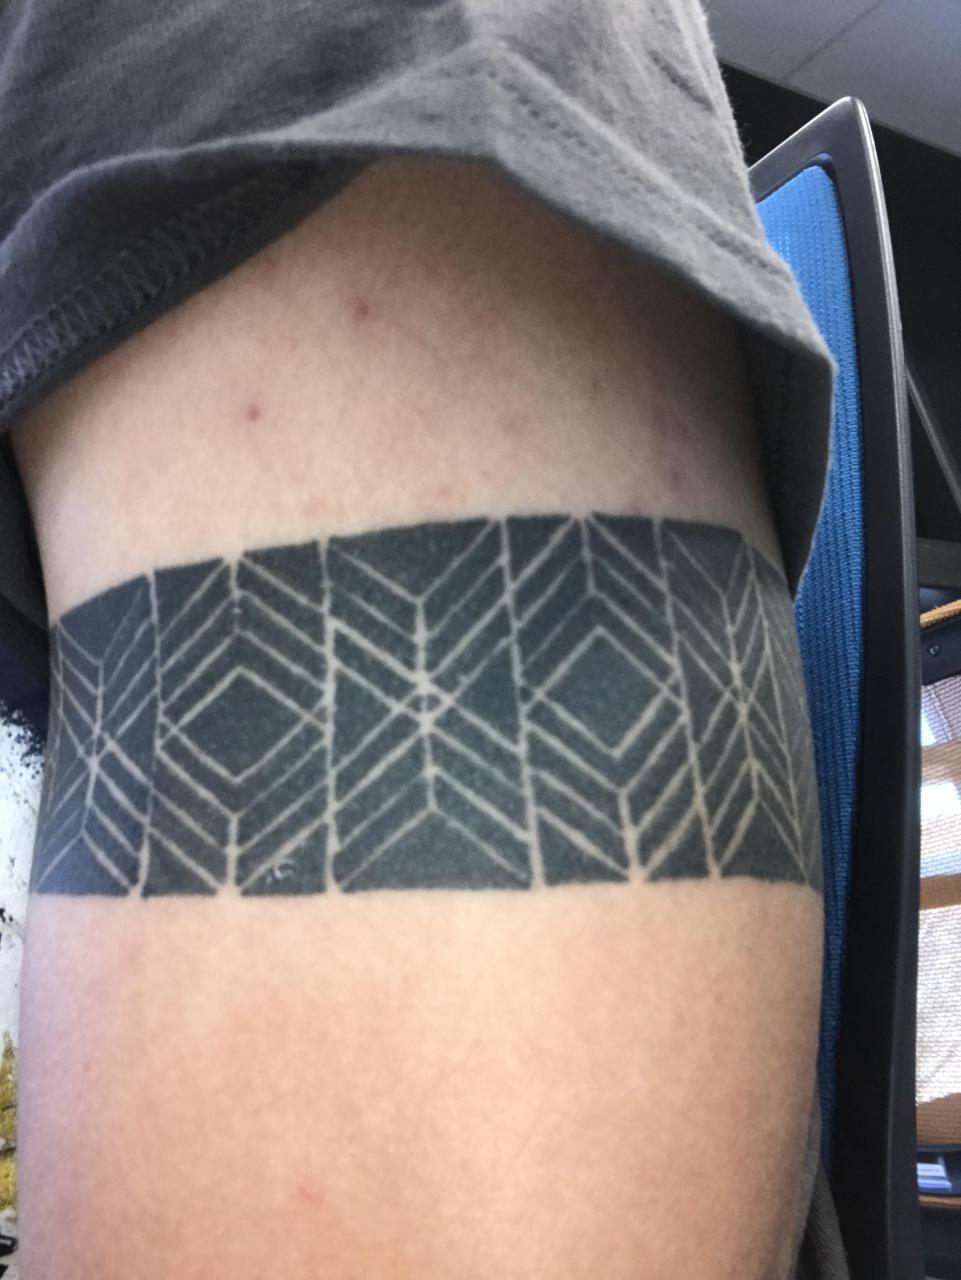 Have had this since April 2019, it wraps all the way around my upper left arm. Thoughts?